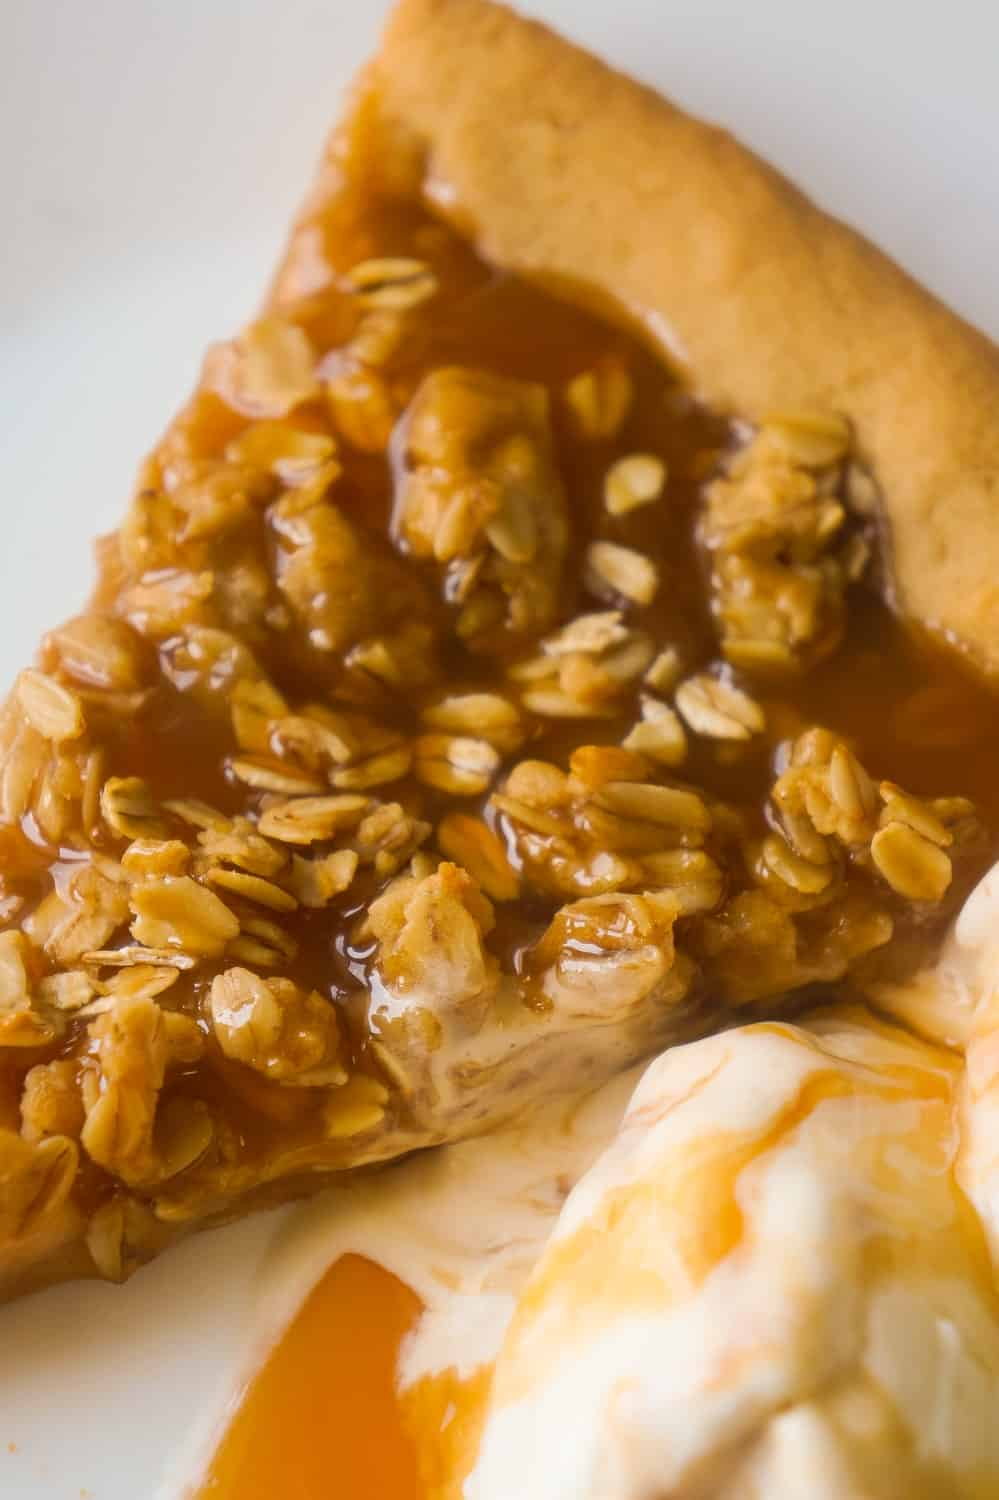 Peanut Butter Apple Pie Cookie Pizza is an easy dessert recipe for peanut butter lovers. A peanut butter cookie crust is topped with apple pie filling, peanut butter oat crumble and drizzled with caramel syrup.